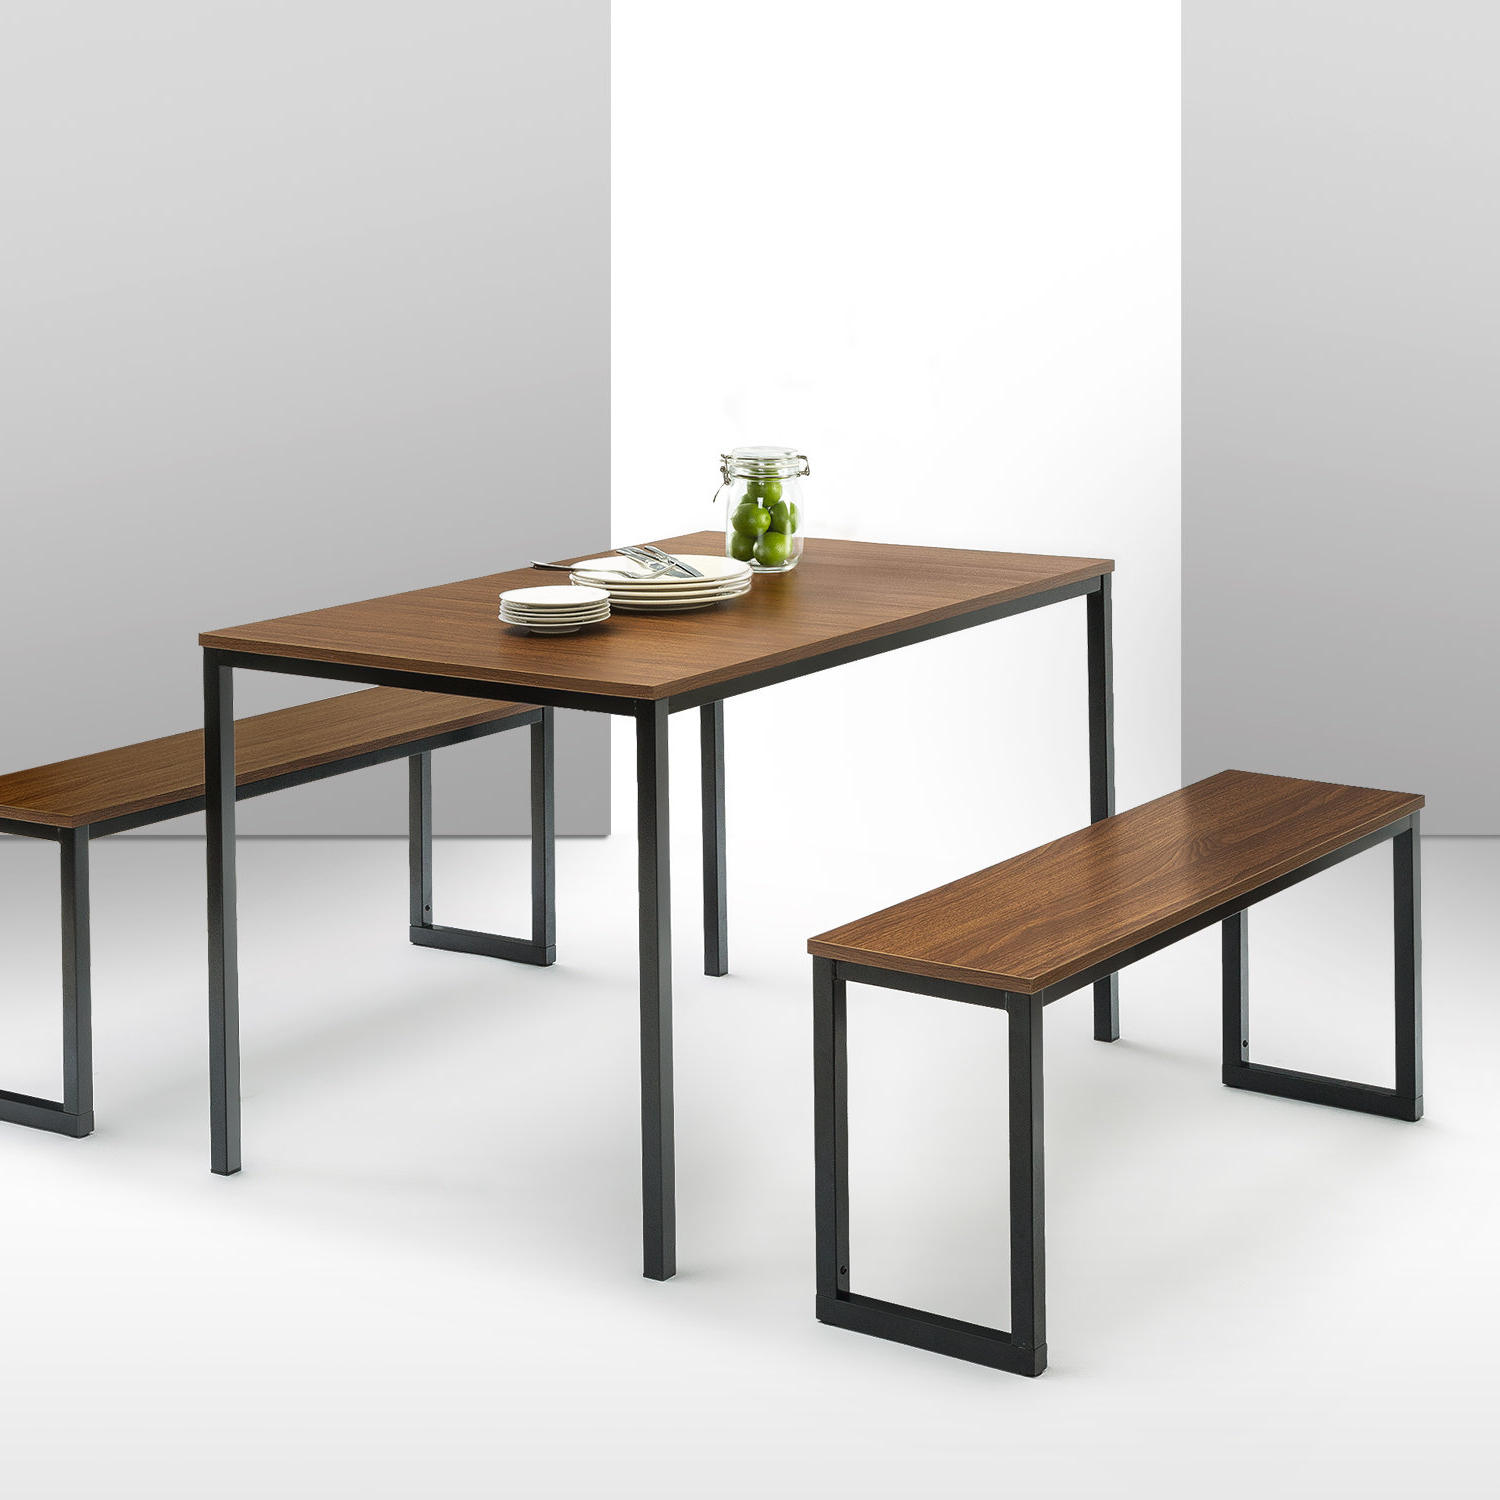 3 Piece Dining Sets With Regard To Most Current Frida 3 Piece Dining Table Set & Reviews (View 20 of 25)